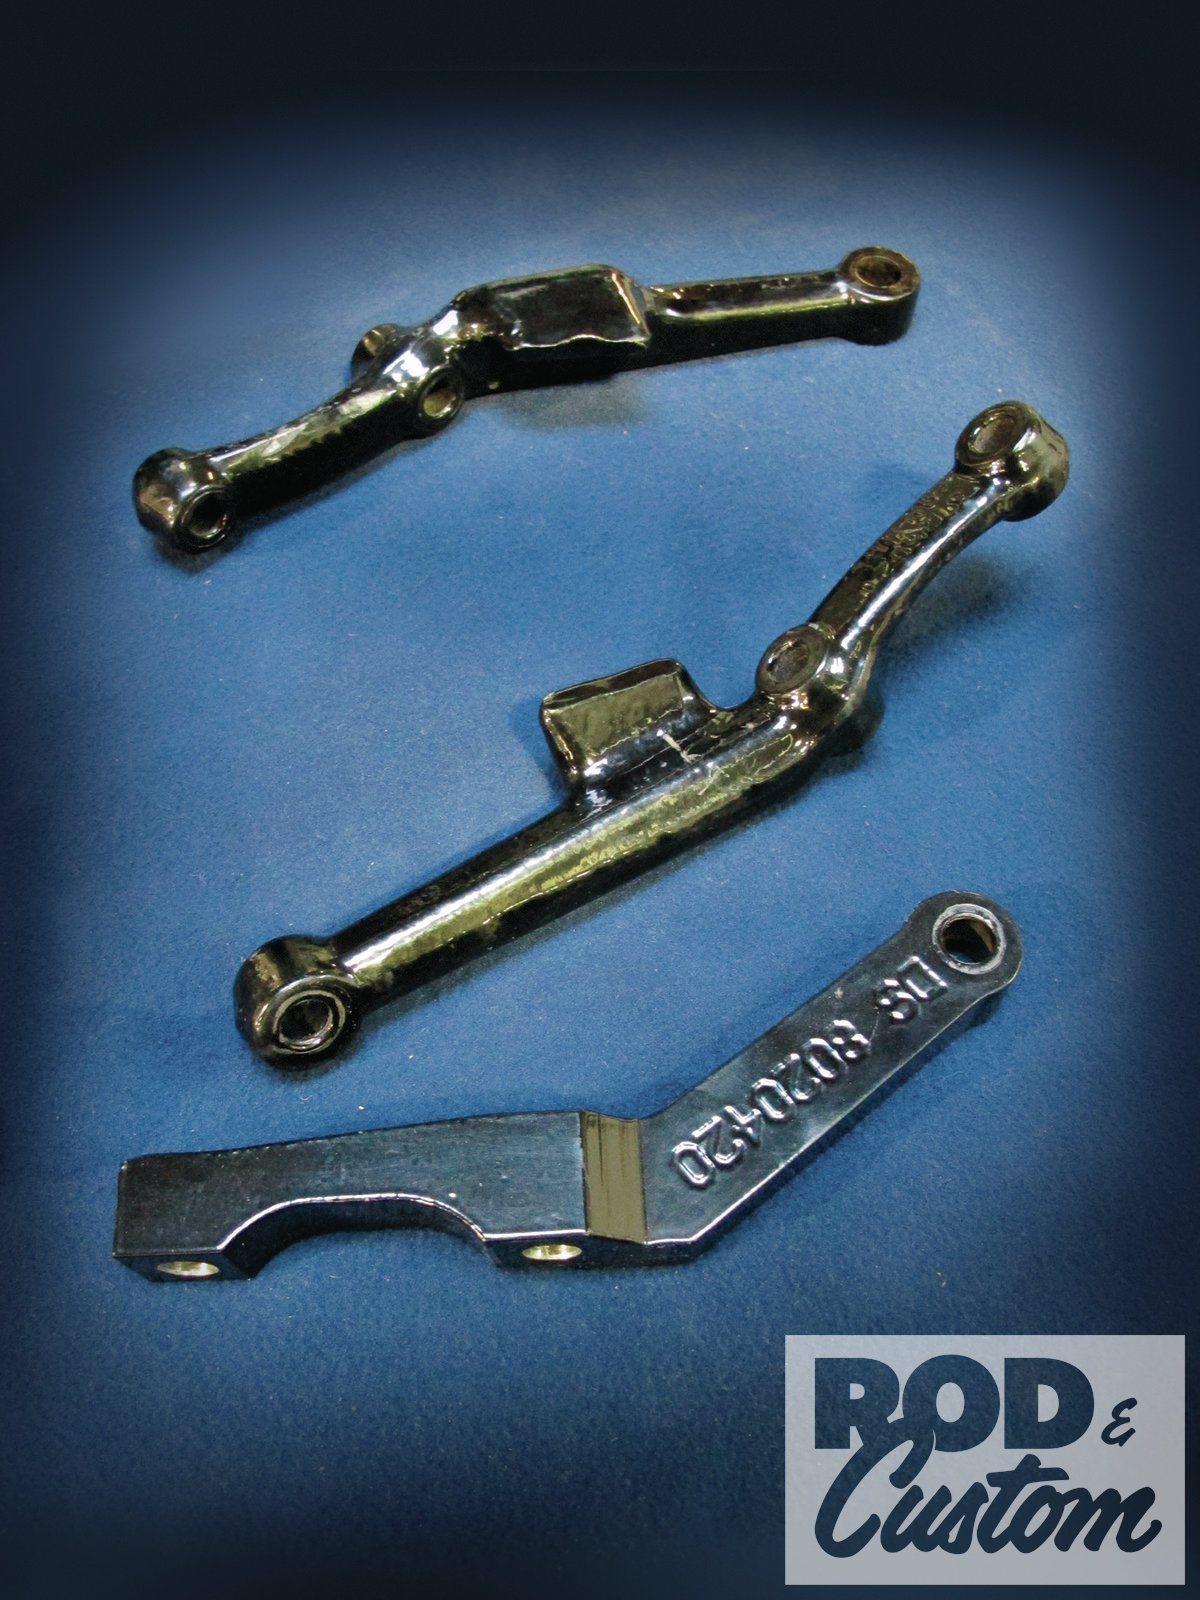 5. Here are the stock steering arms (top) compared to one of the Unisteer versions.